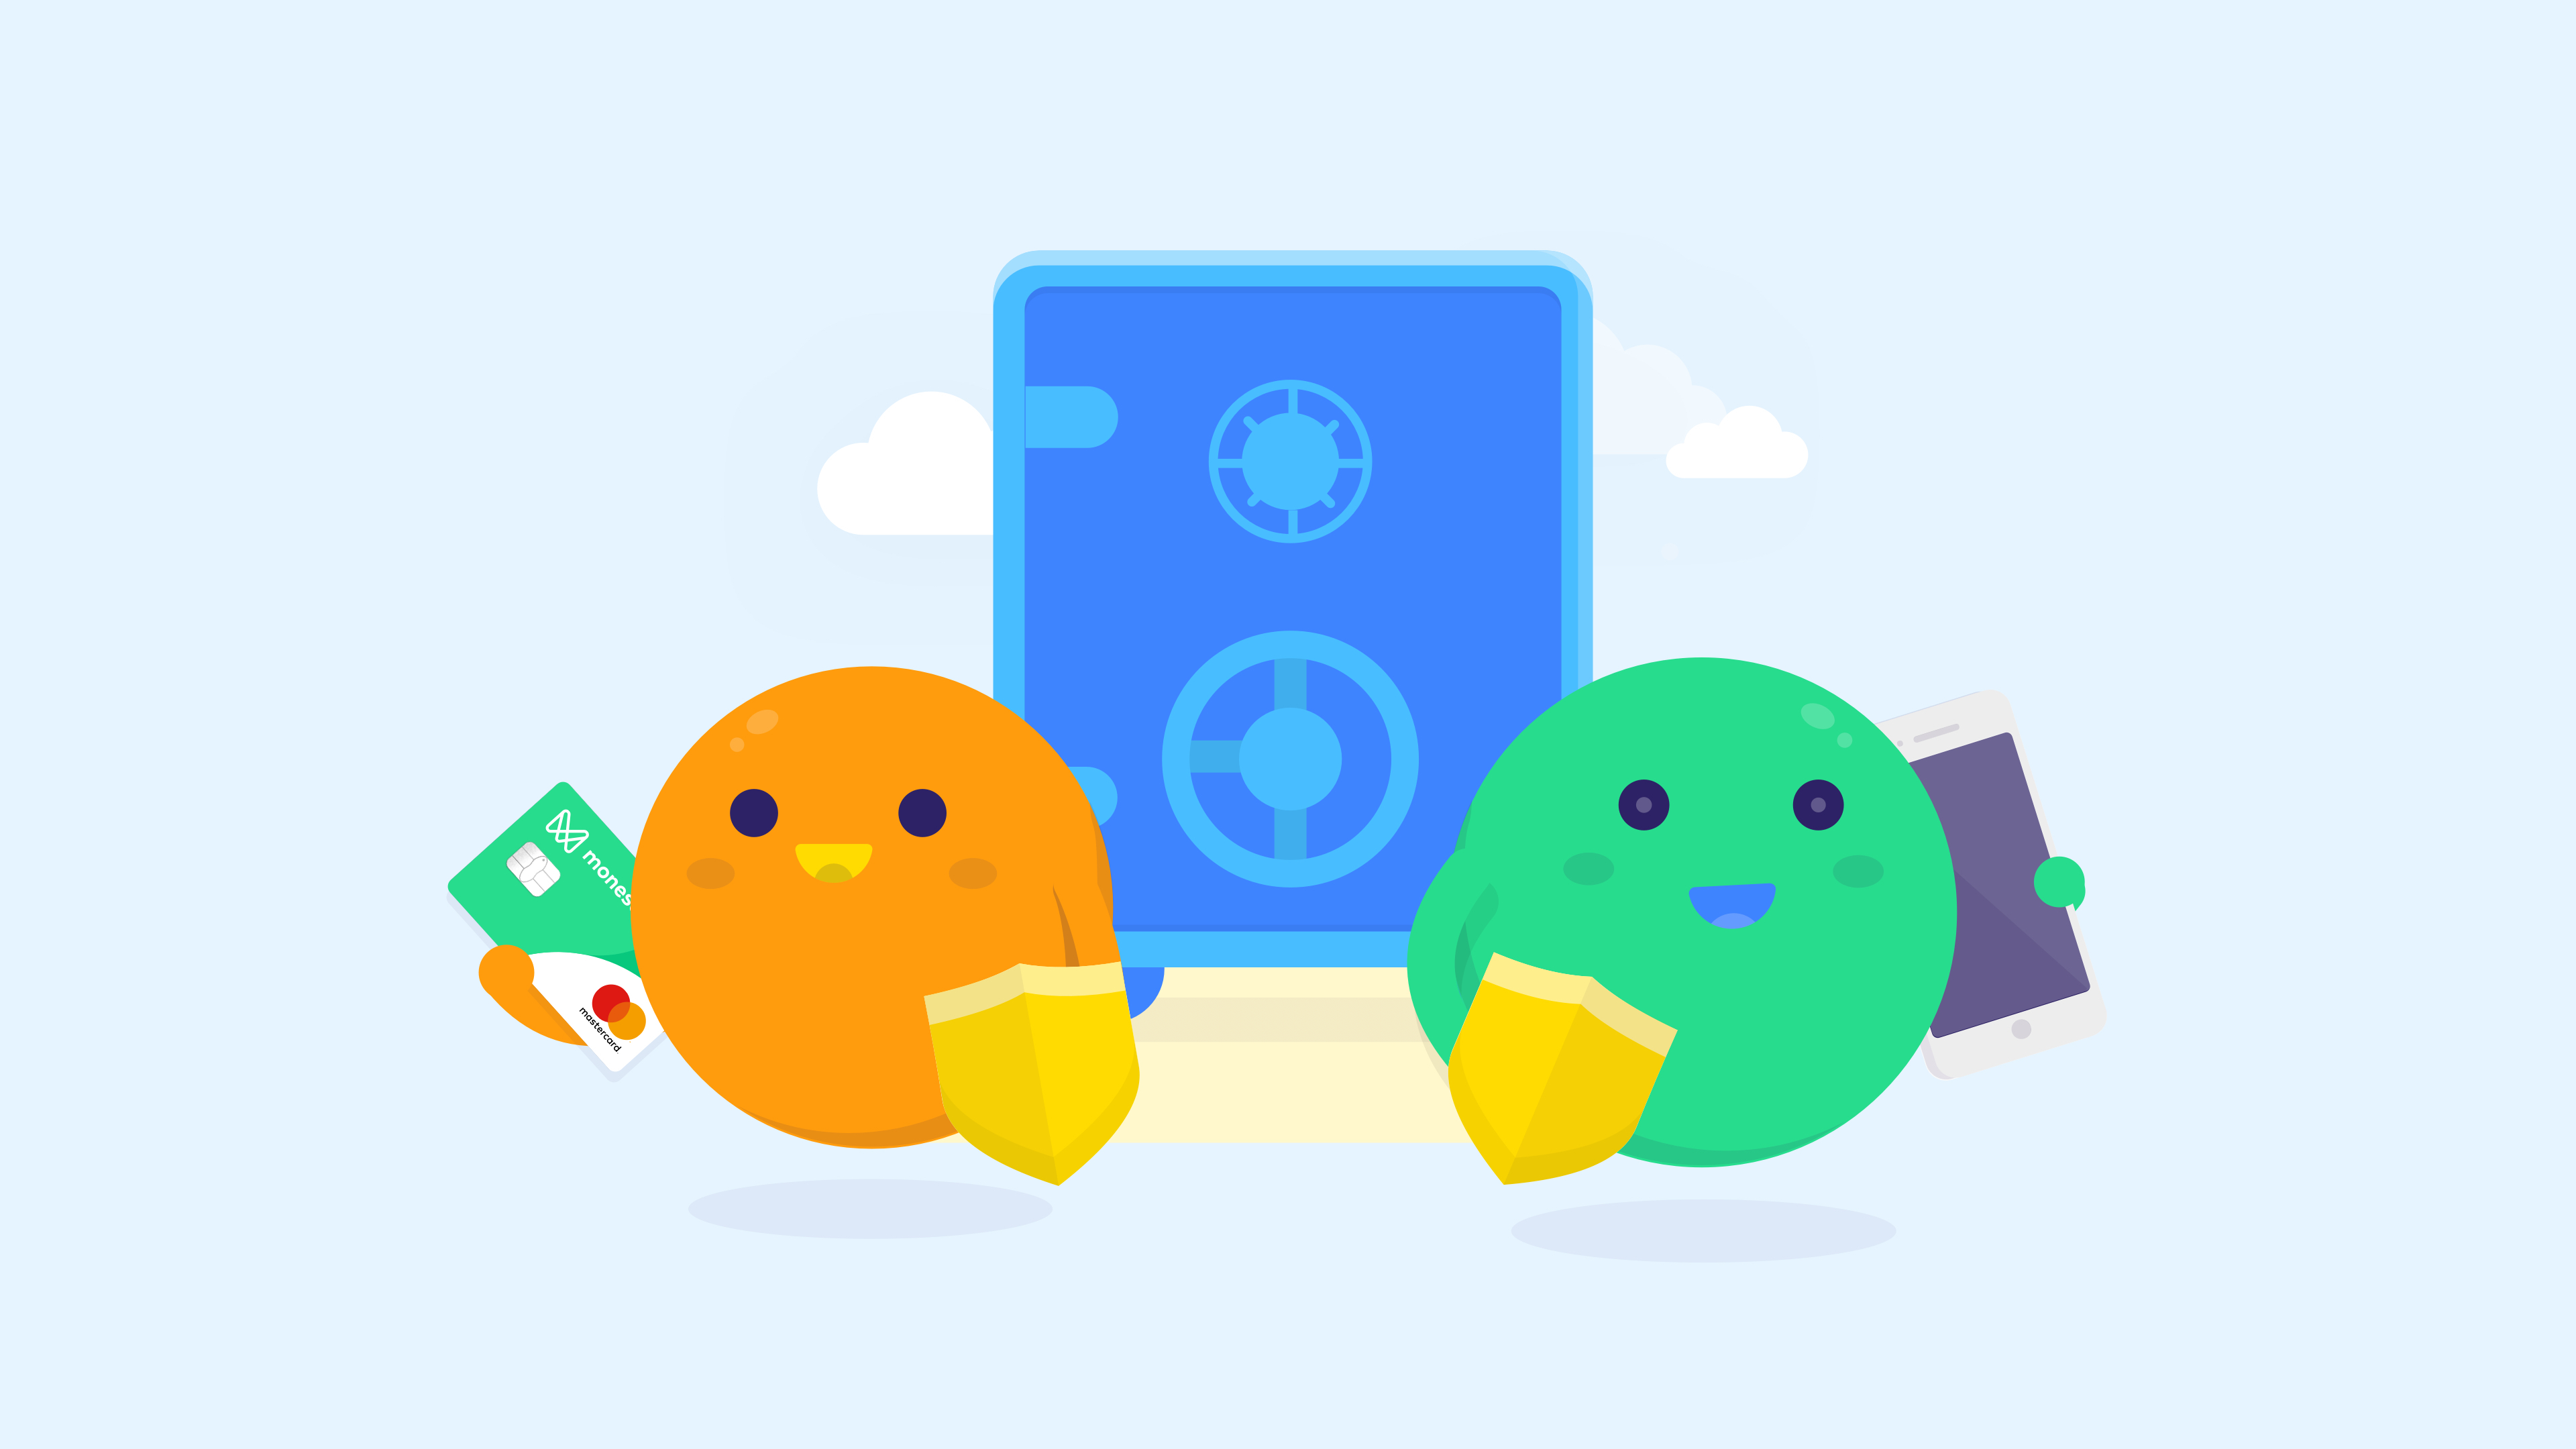 Monese blue vault orange and green characters with sheild, card and phone